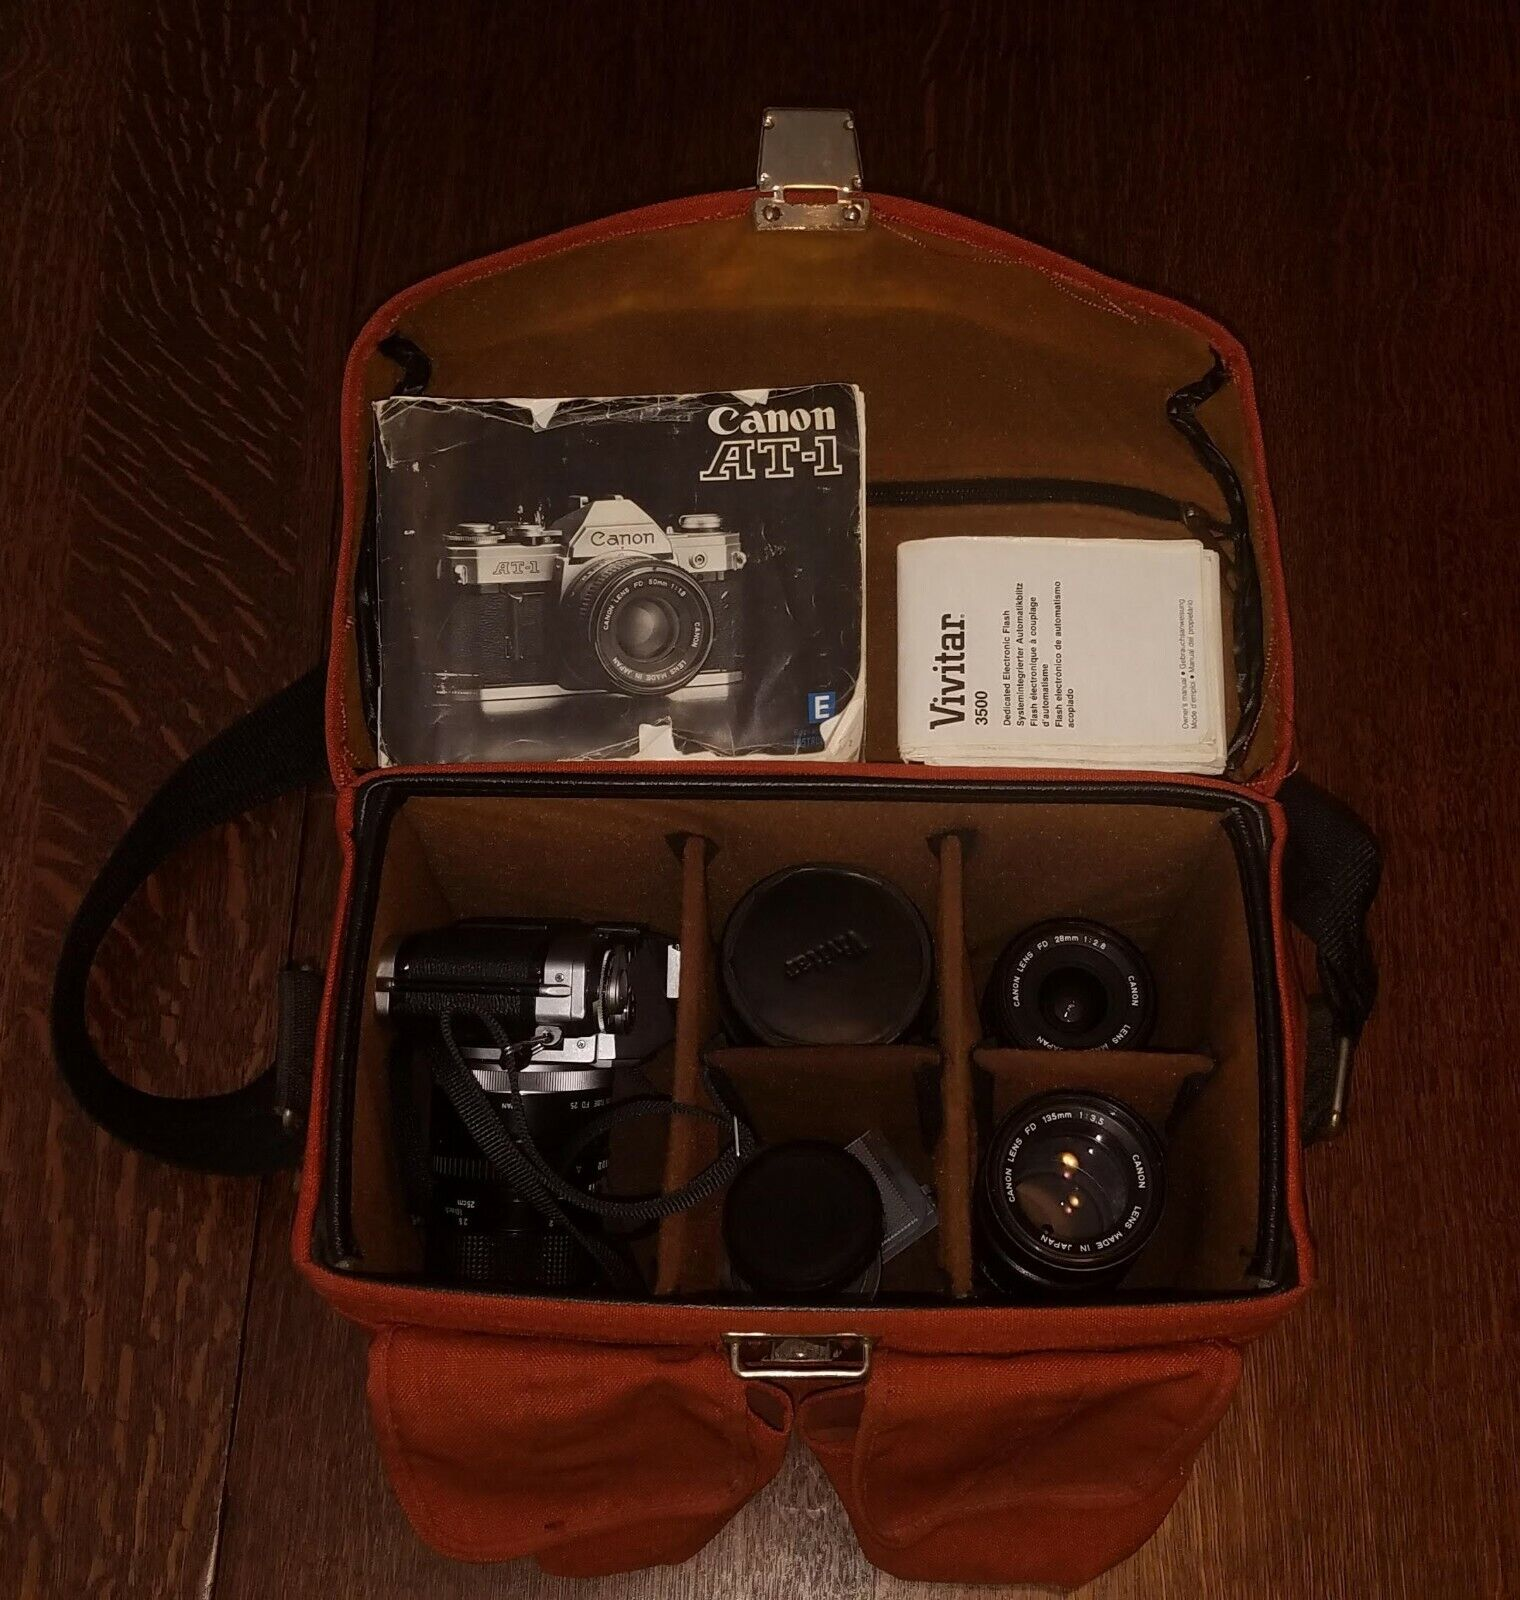 Canon AT-1 Camera With Owner s Manual, 3 Lenses, Extension Tube, And Carry Case - $175.00